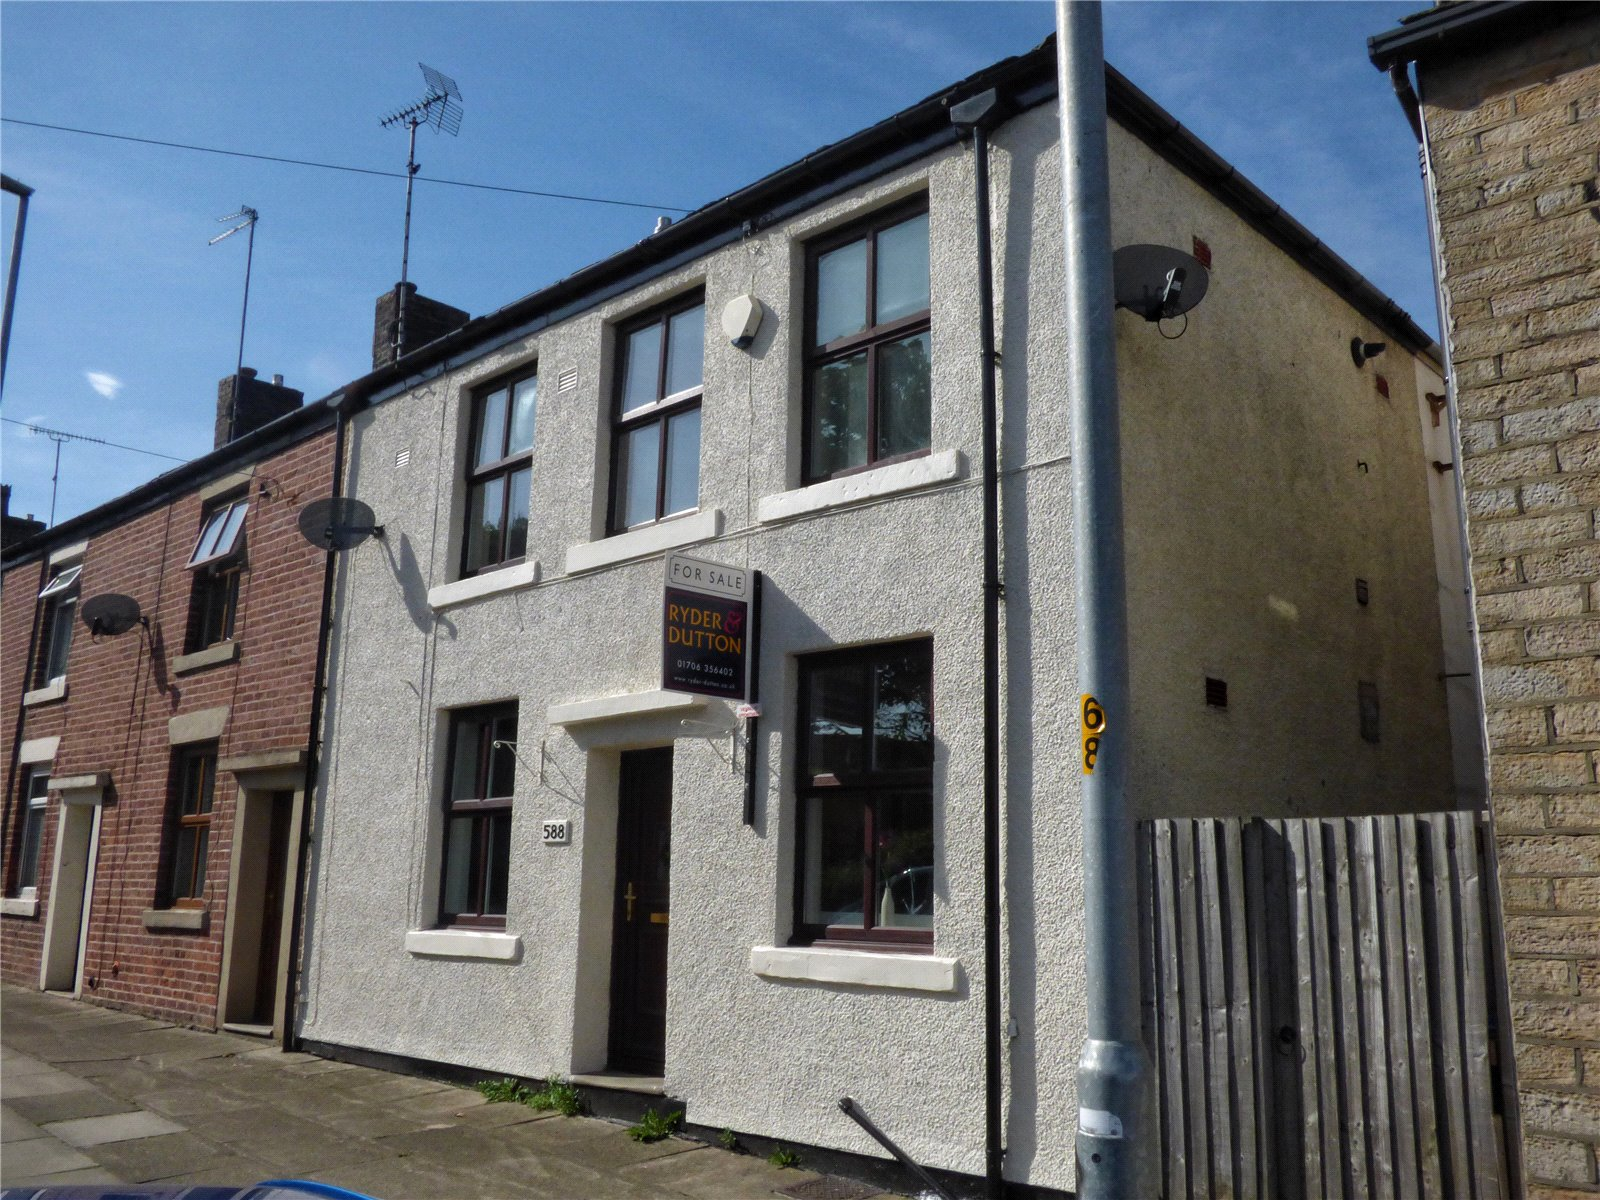 2 Bedrooms Terraced House for sale in Edenfield Road, Norden, Rochdale, OL12